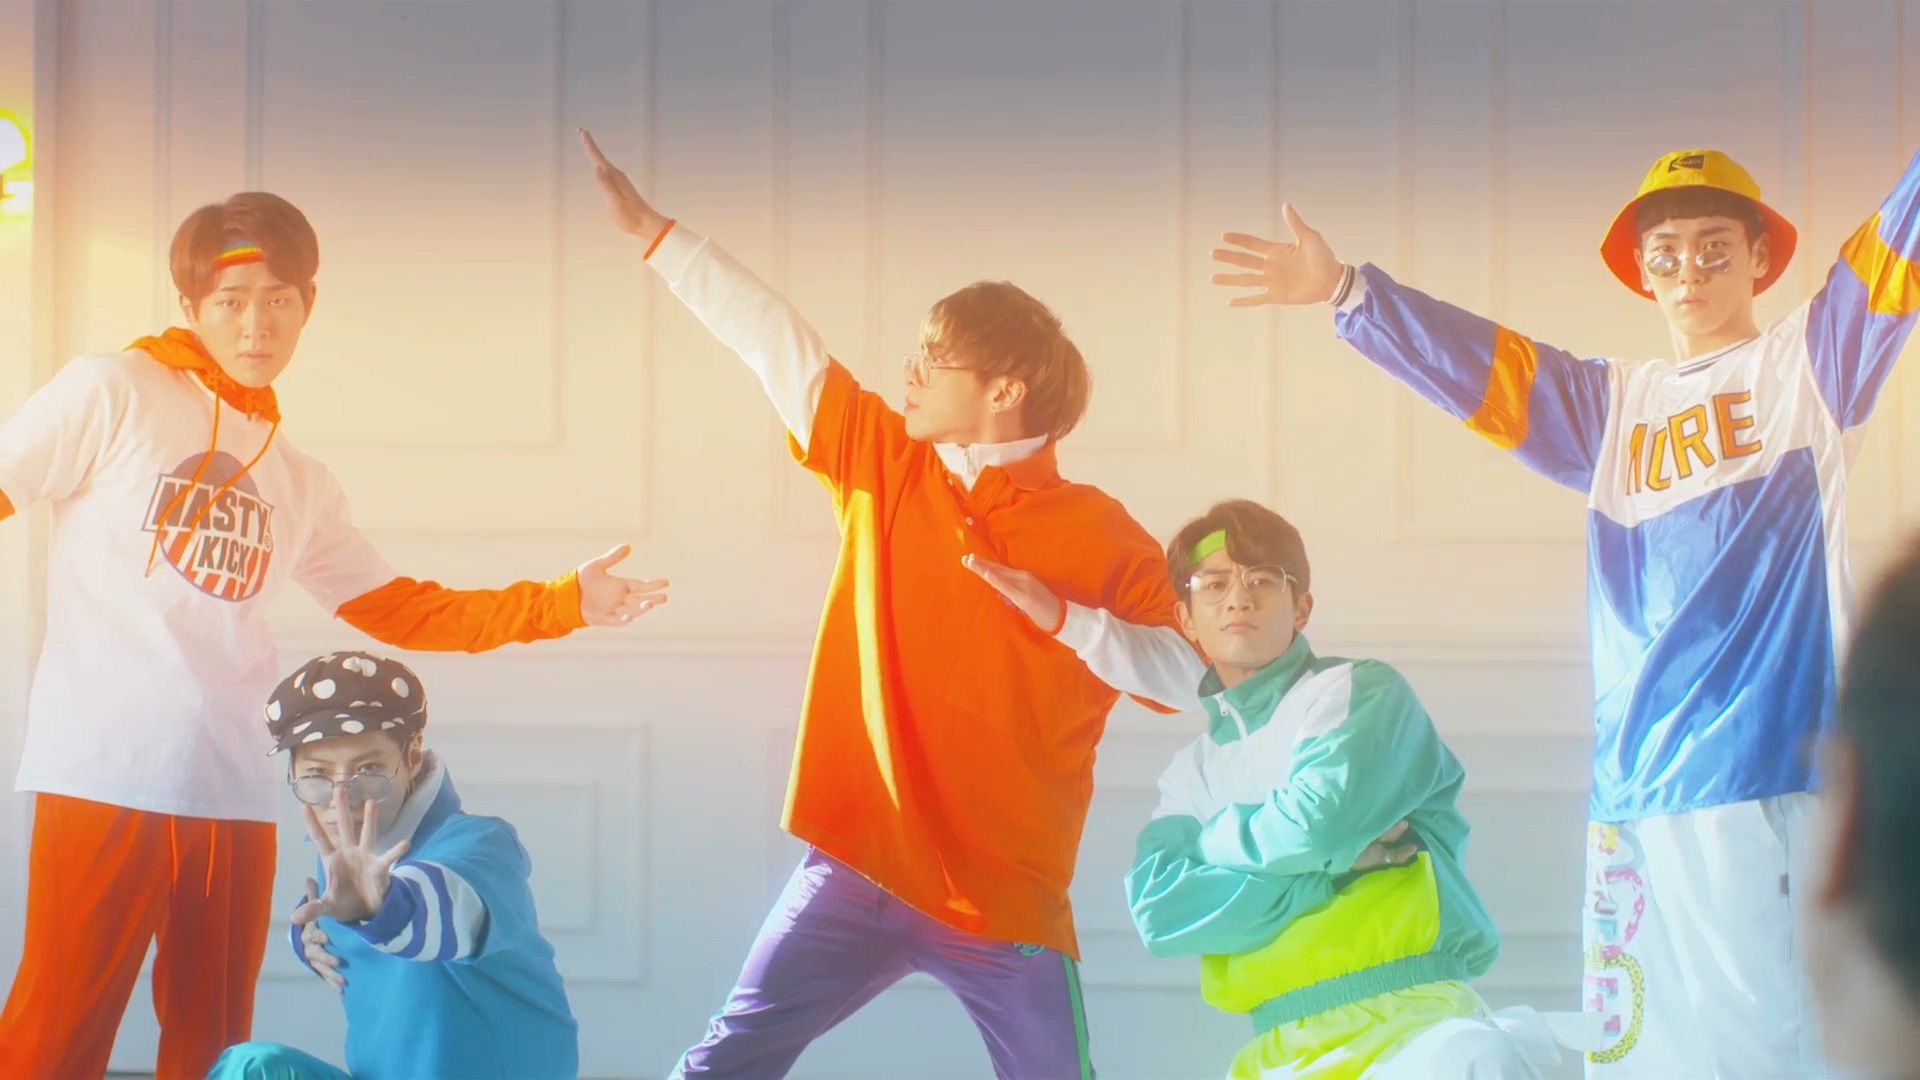 1920x1080 What is your current/favorite Kpop wallpaper? : kpop